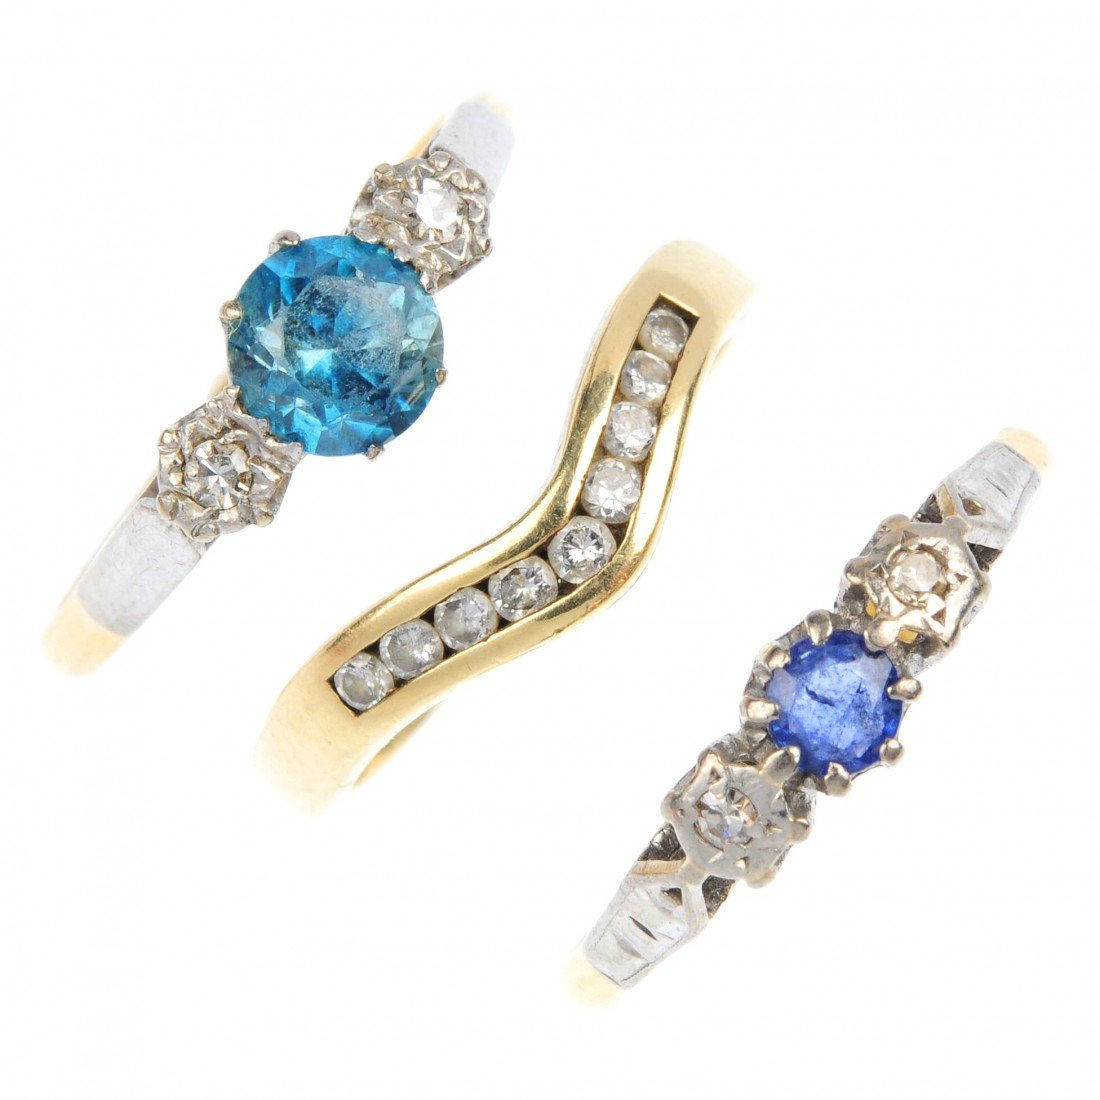 129: A selection of three gem-set rings. To include a c